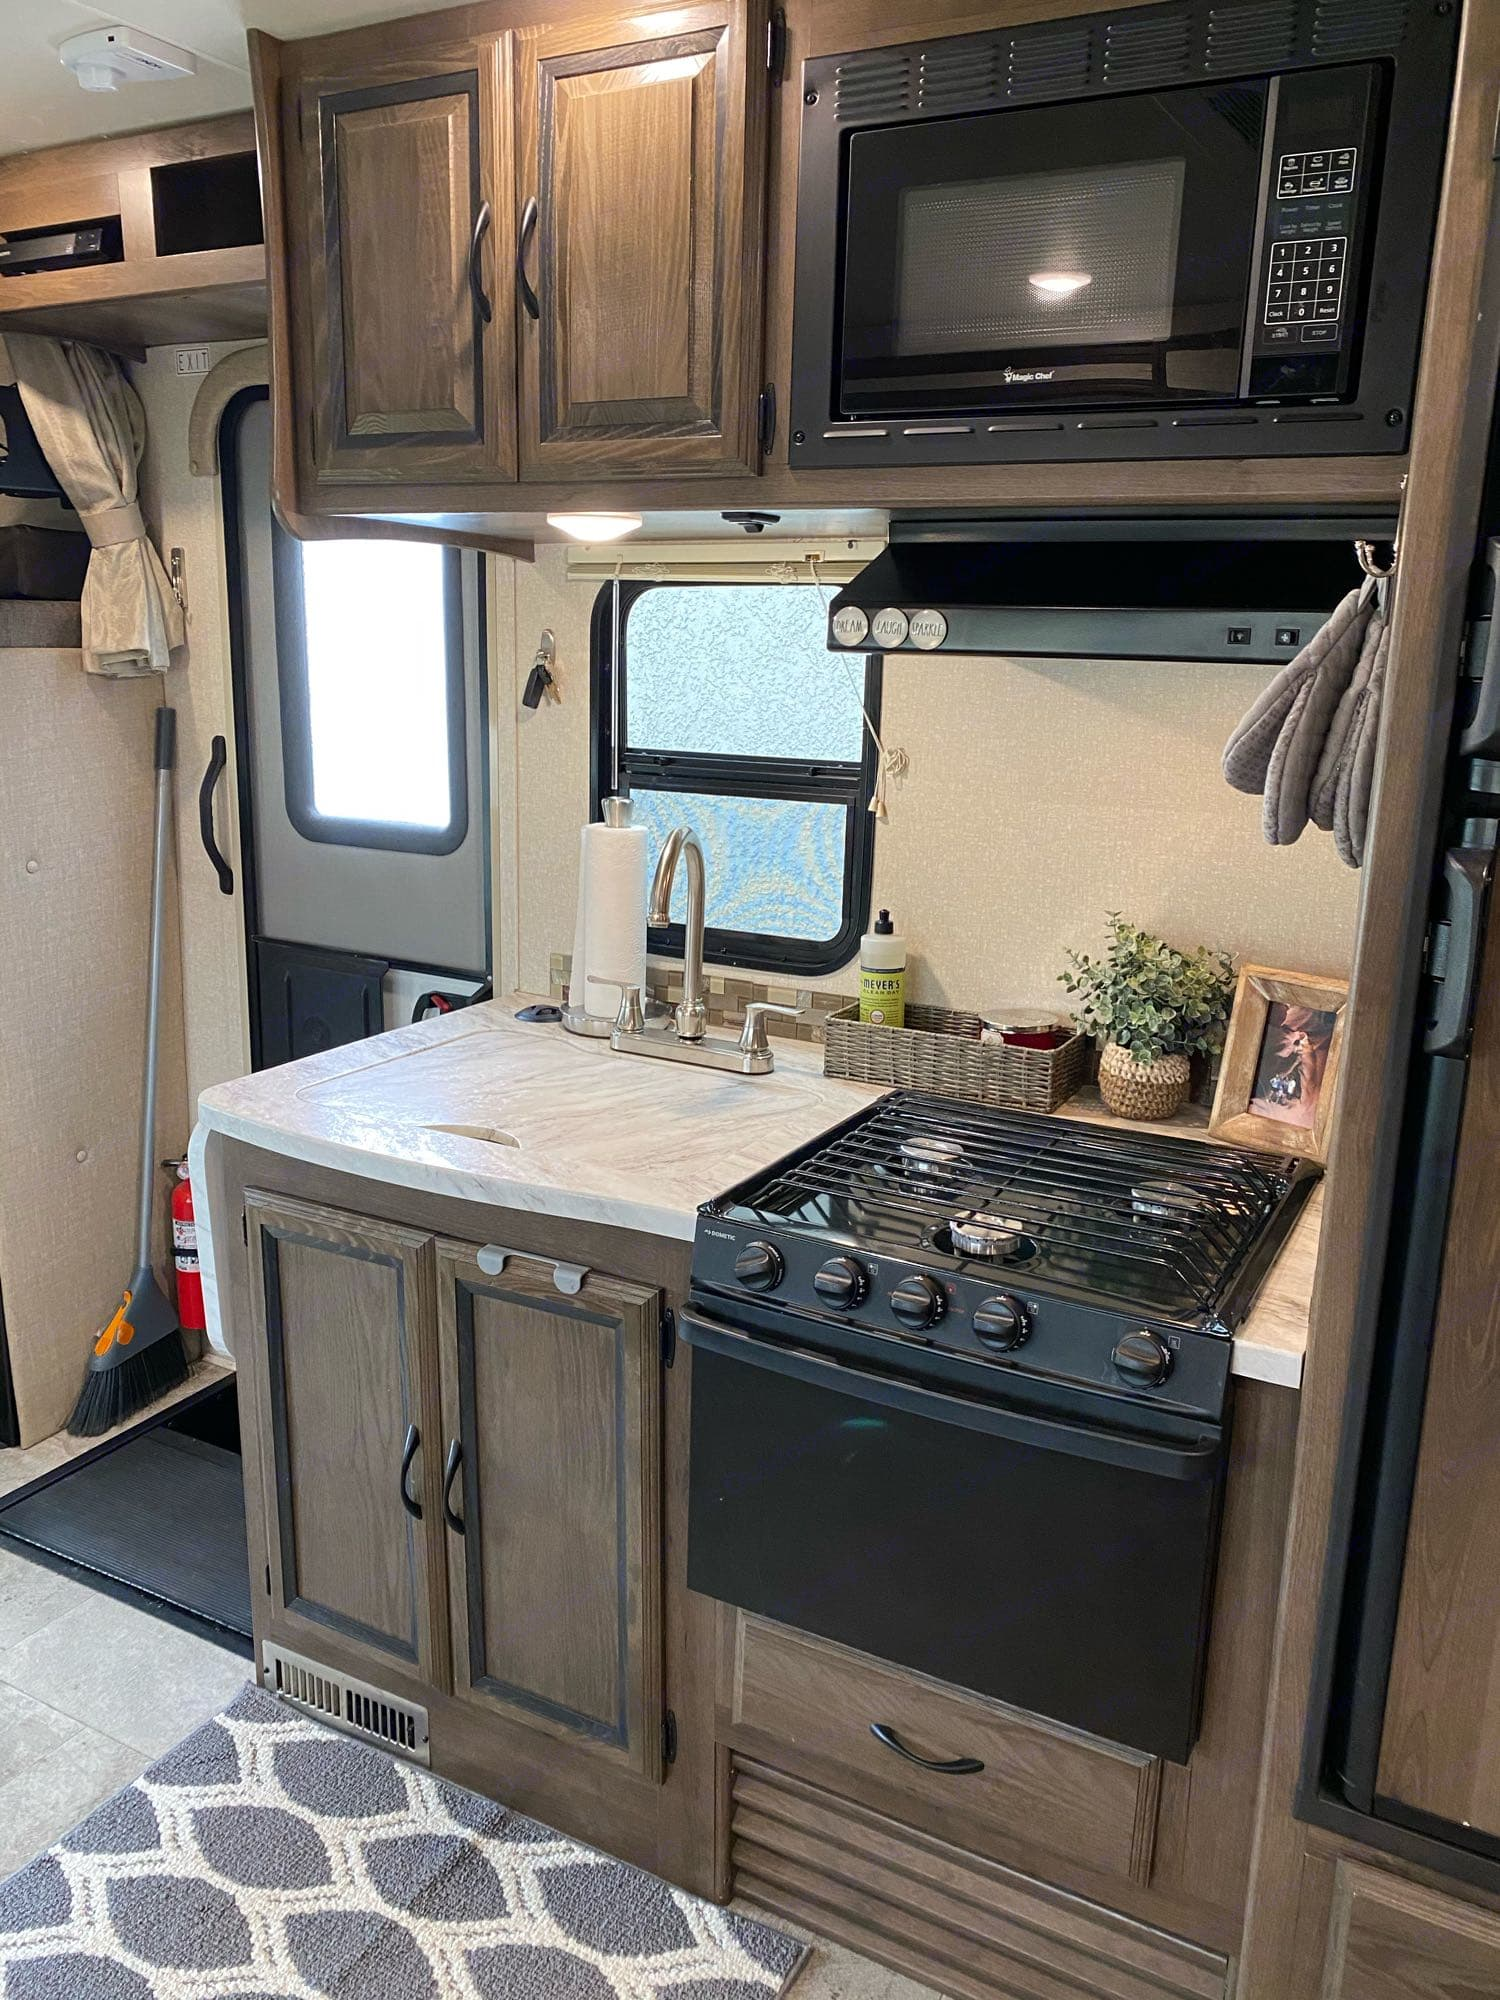 full size sink and oven/stovetop. Coachmen Prism 2019